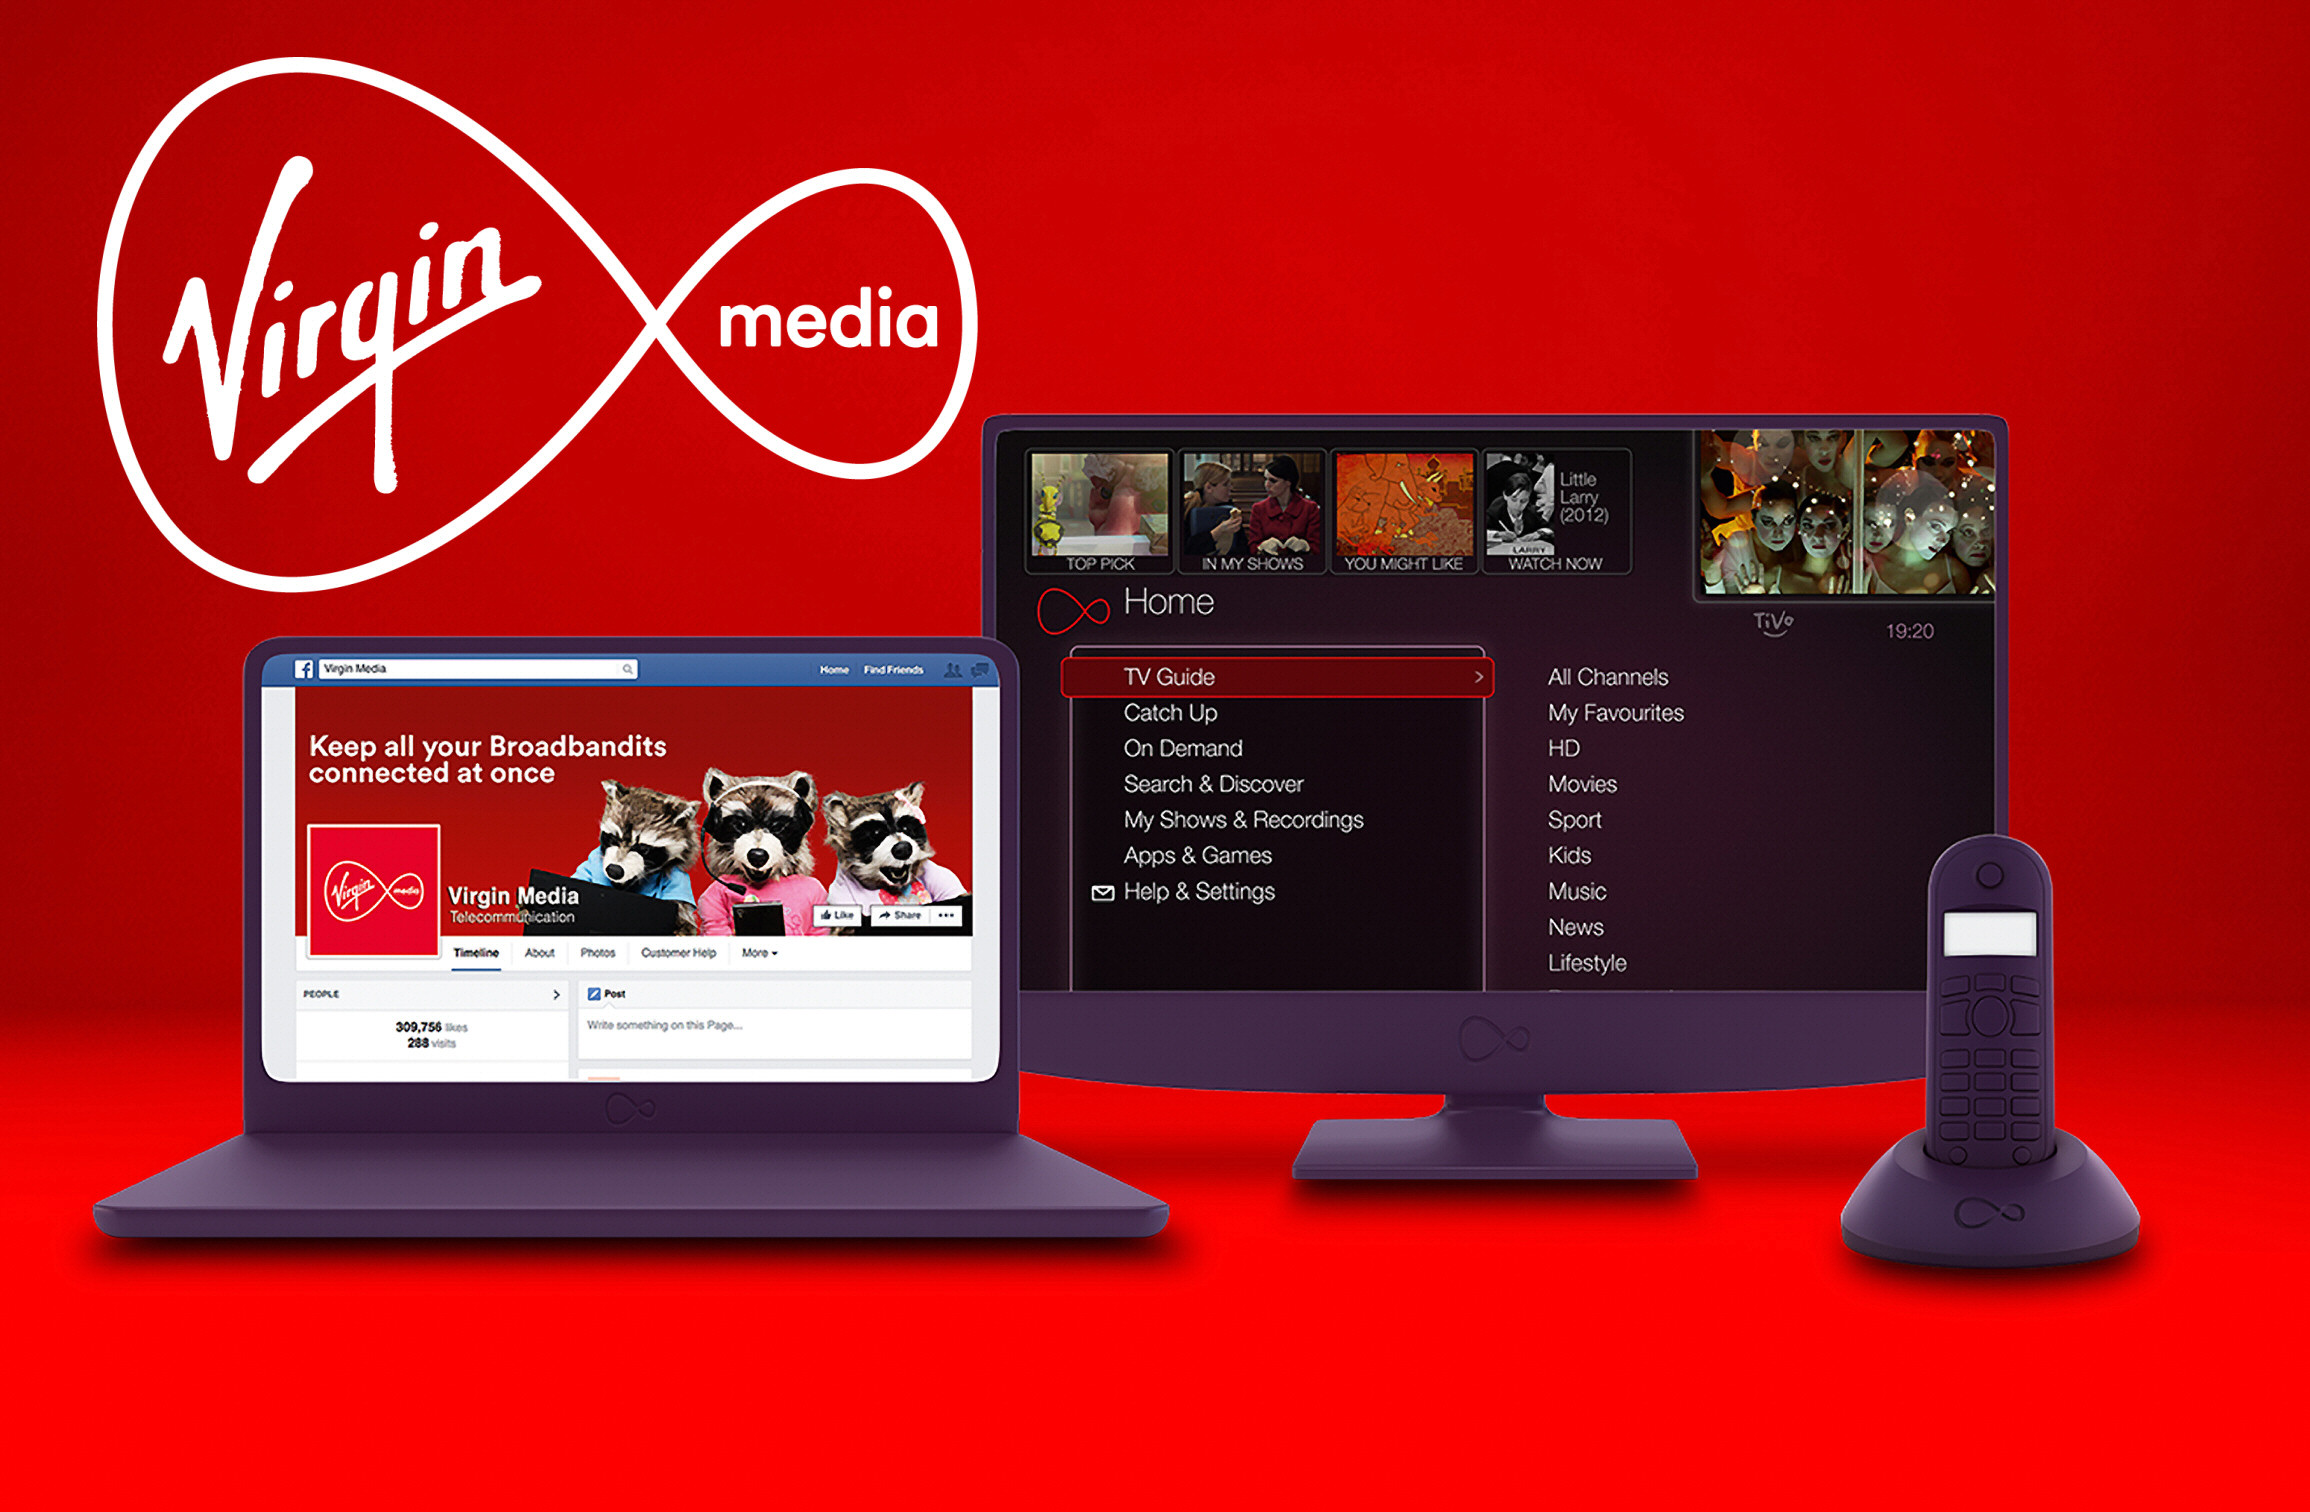 Virgin Media Bundled Services